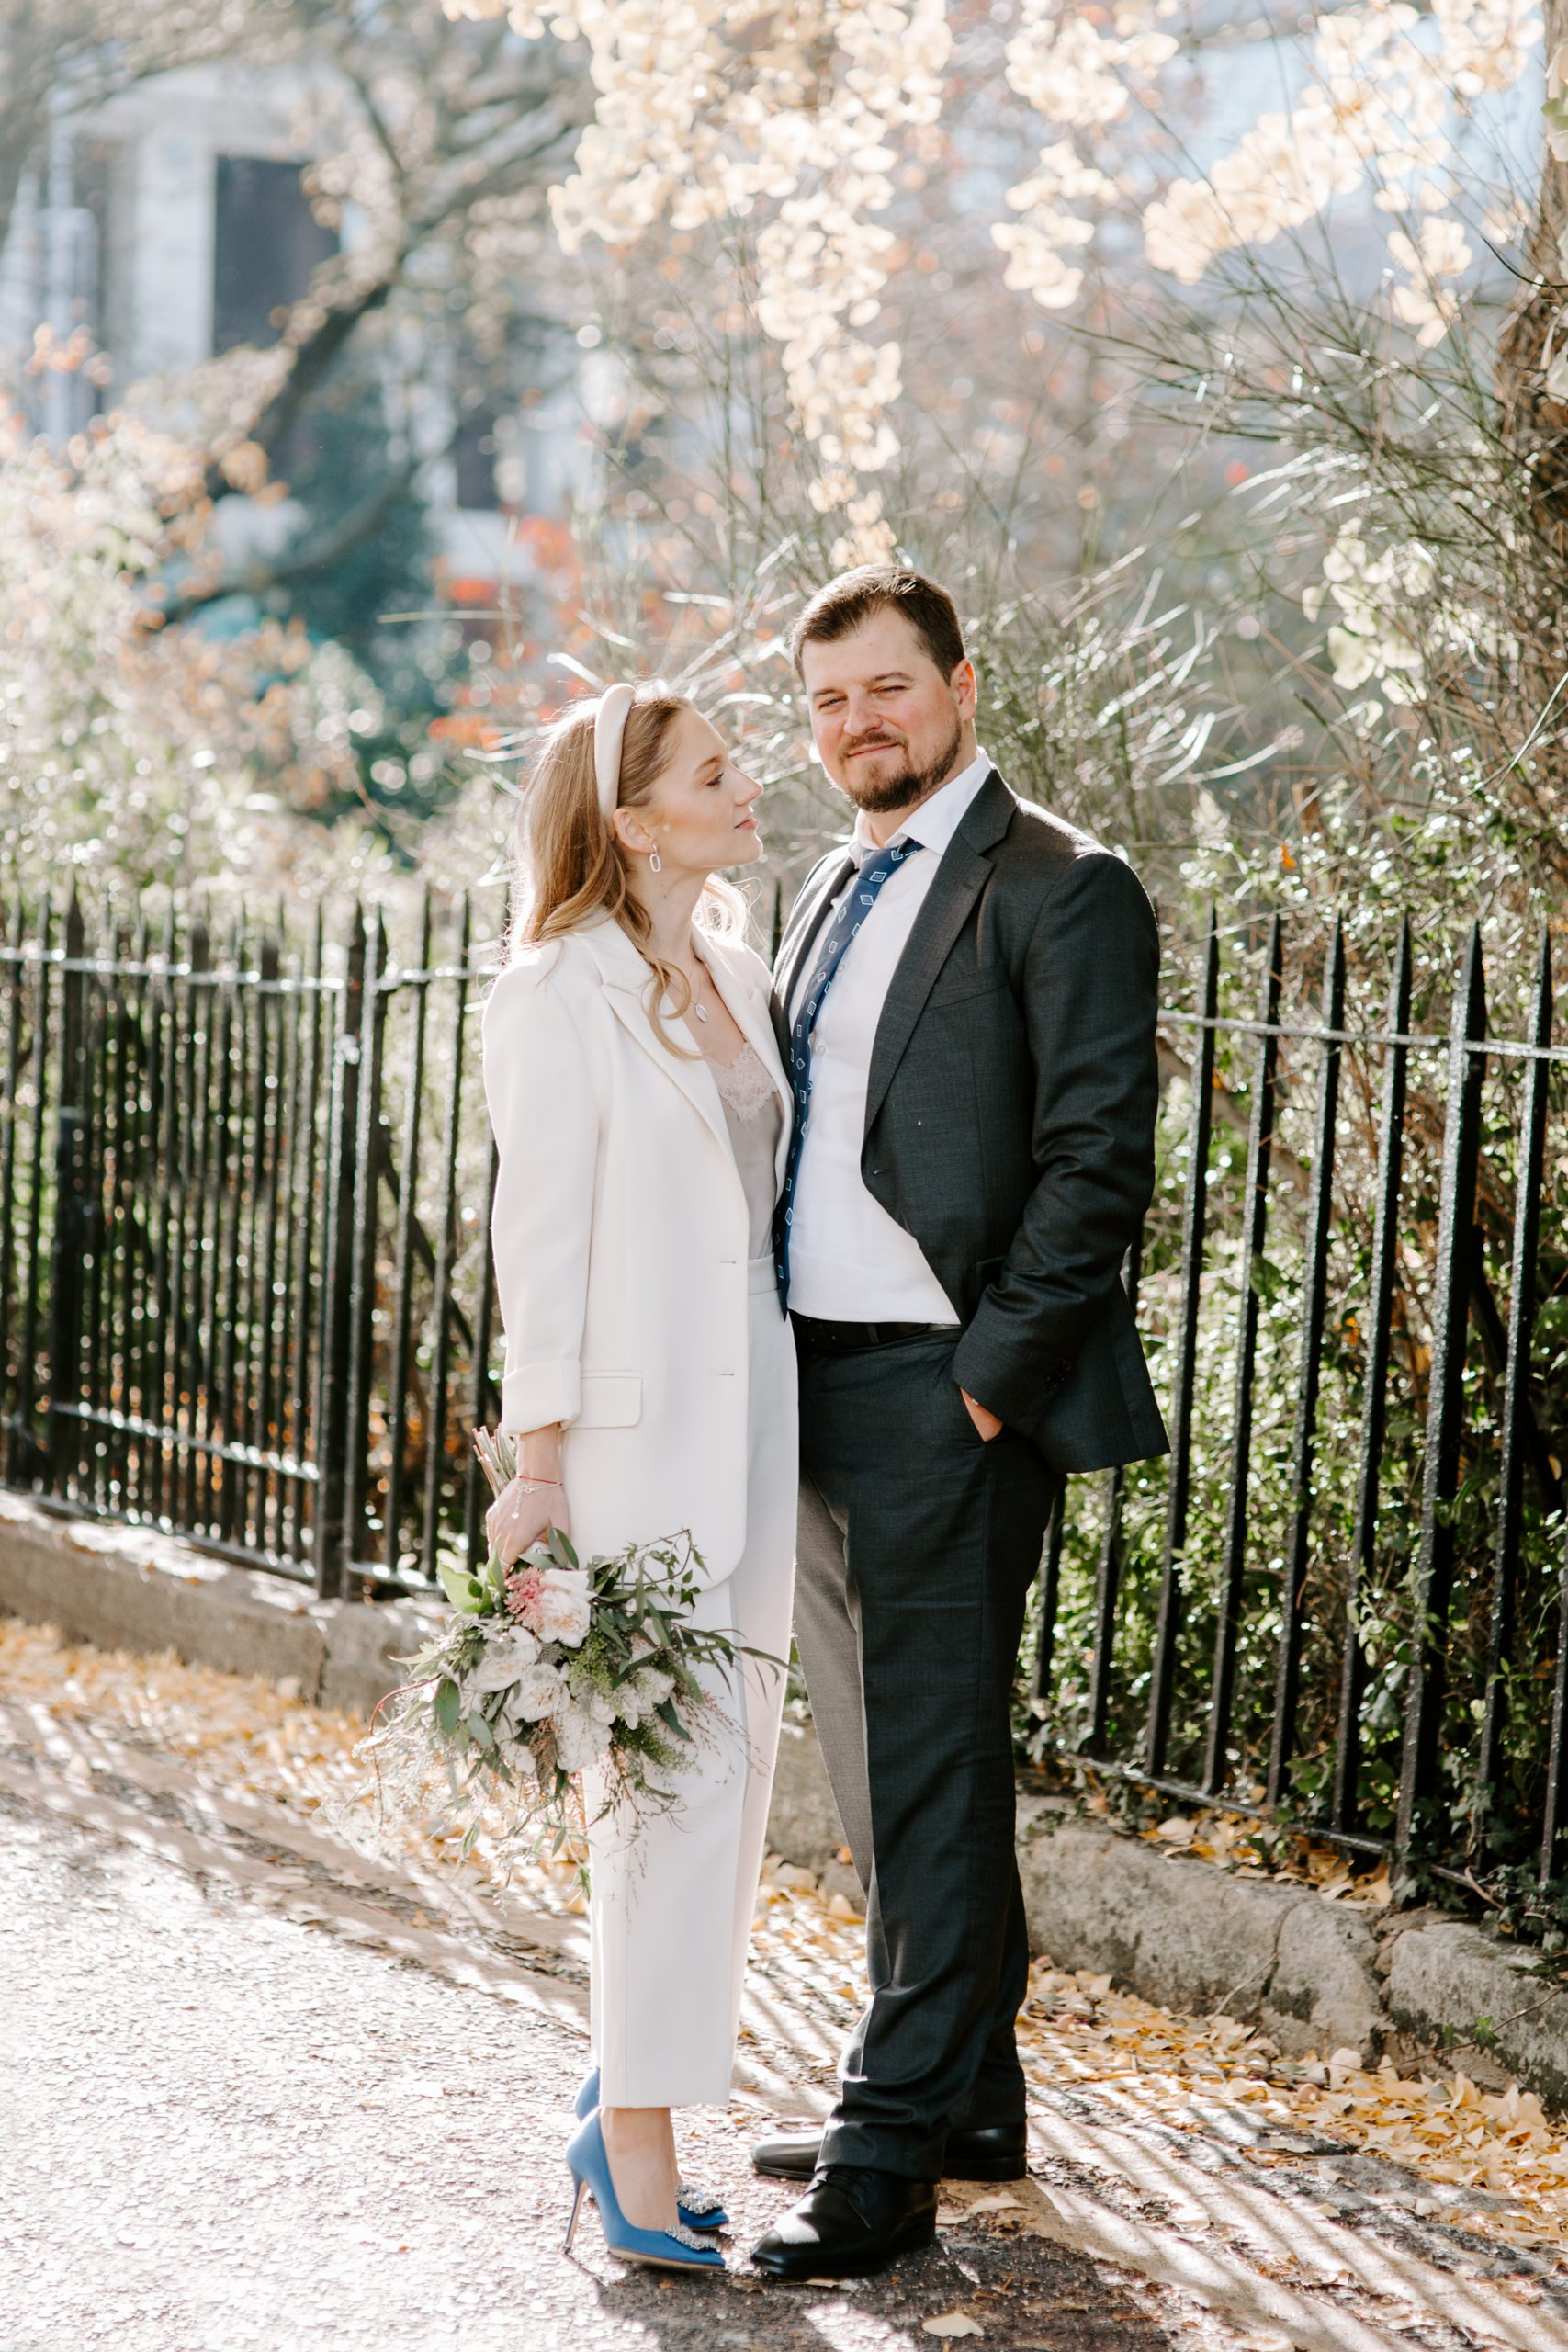 Bride and groom on London streets